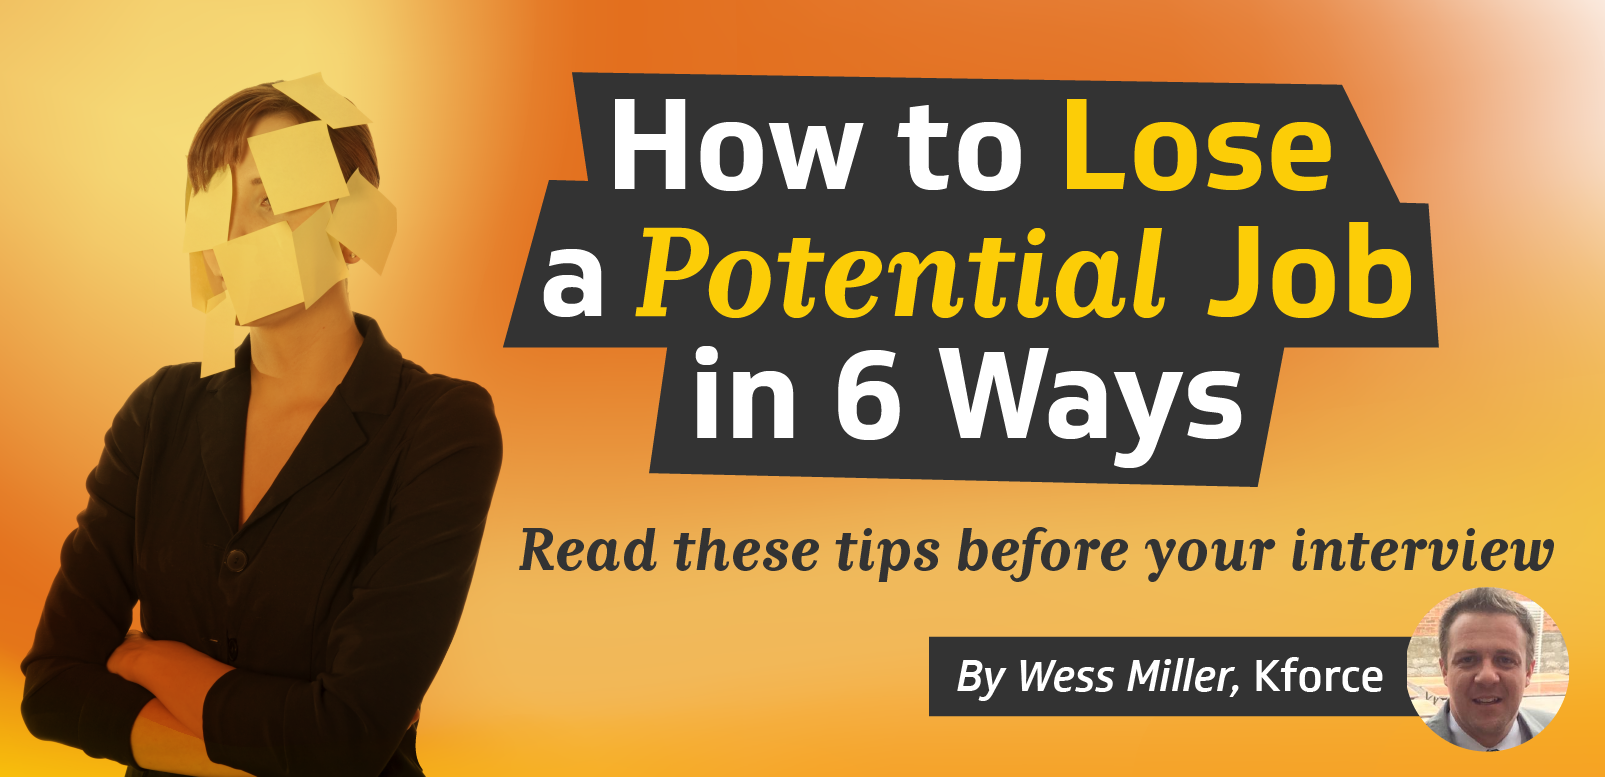 How to lose a potential job in 6 ways